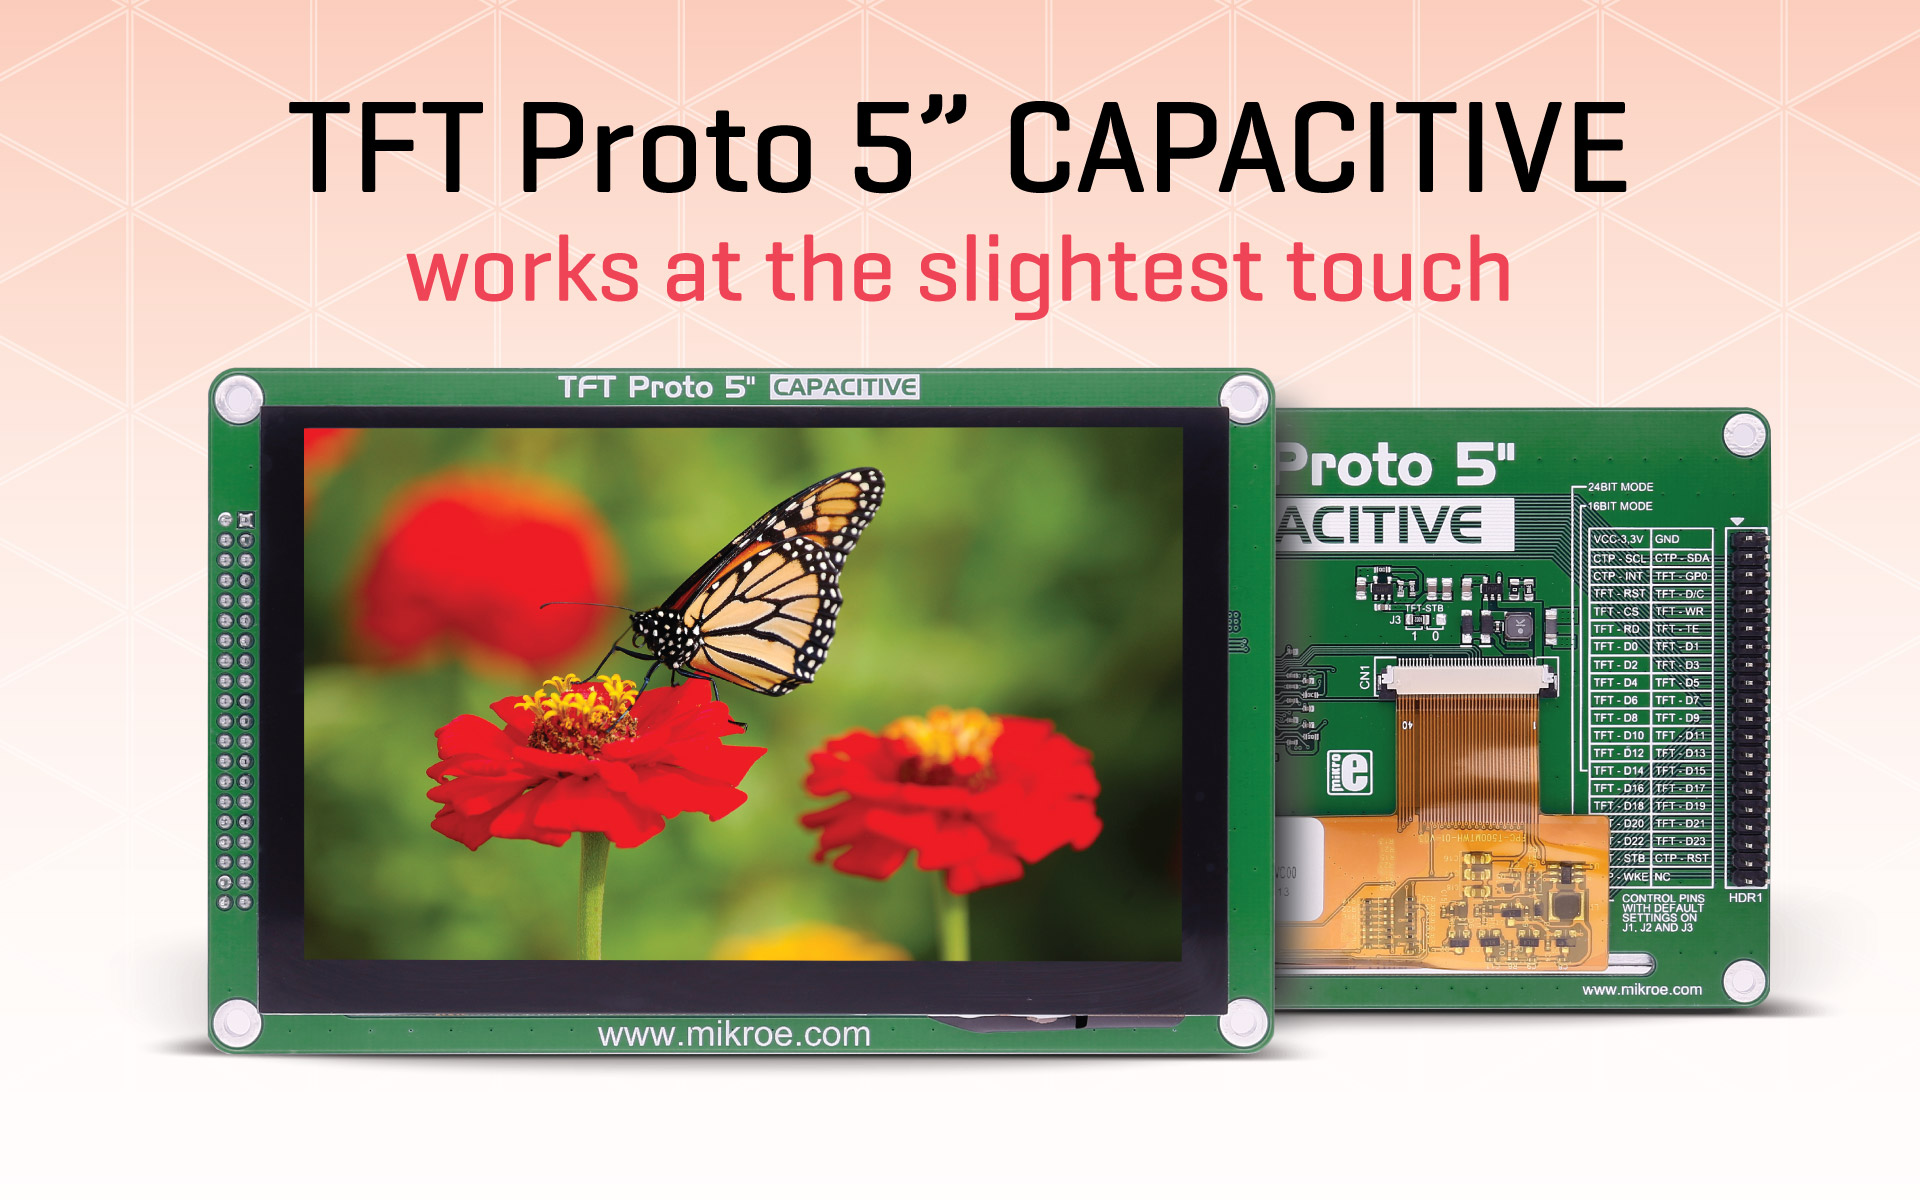 TFT PROTO 5'' Capacitive – works at the slightest touch